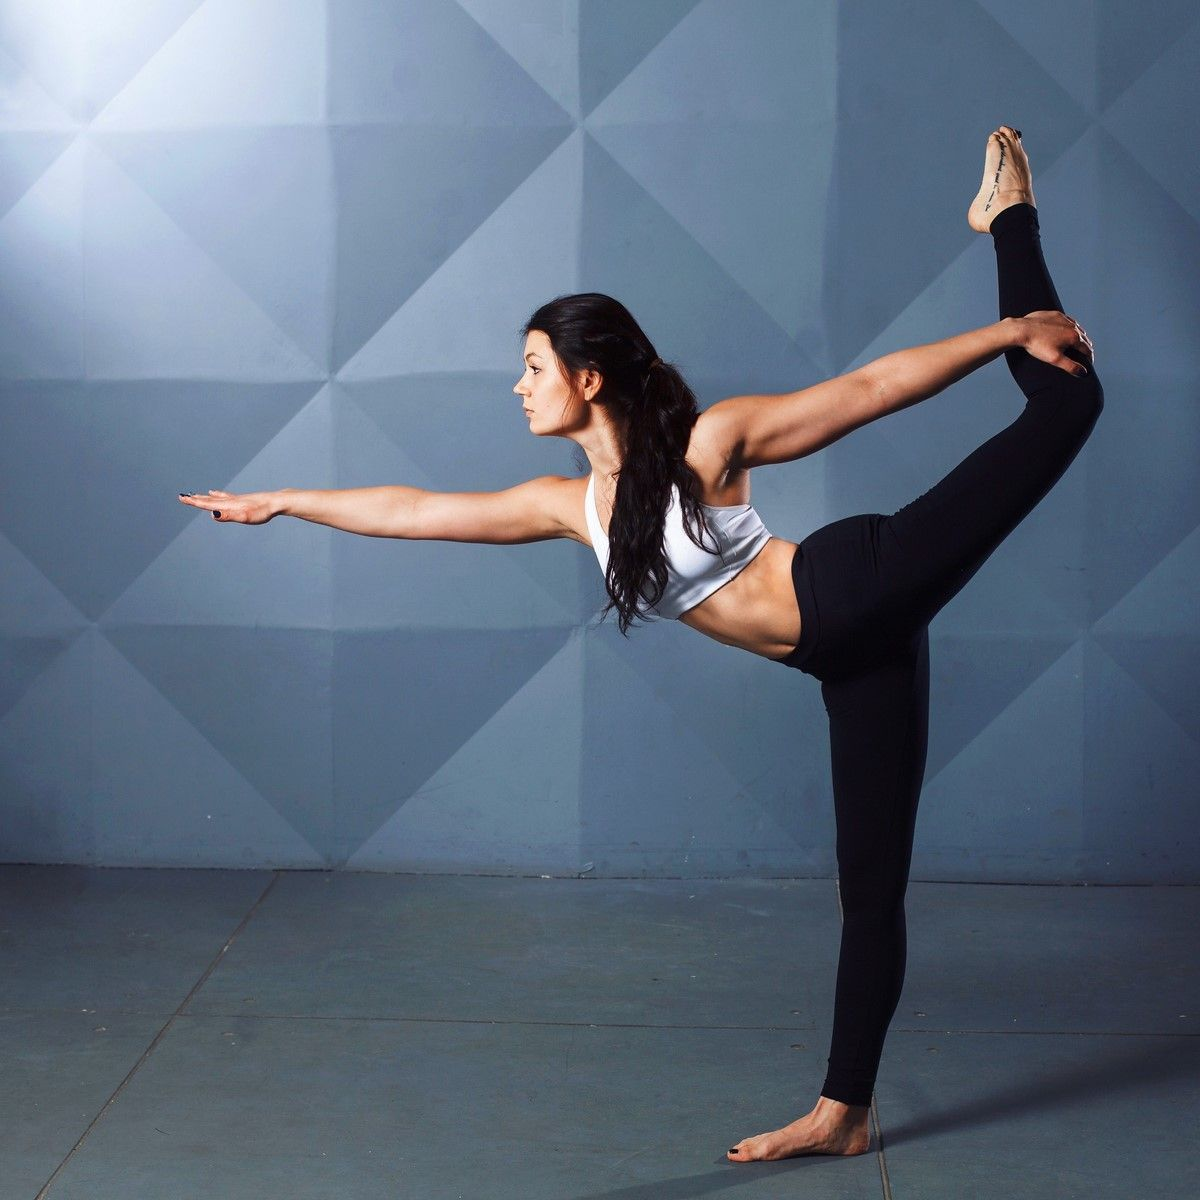 stress reducing breathing exercise the dancer pose standing scale